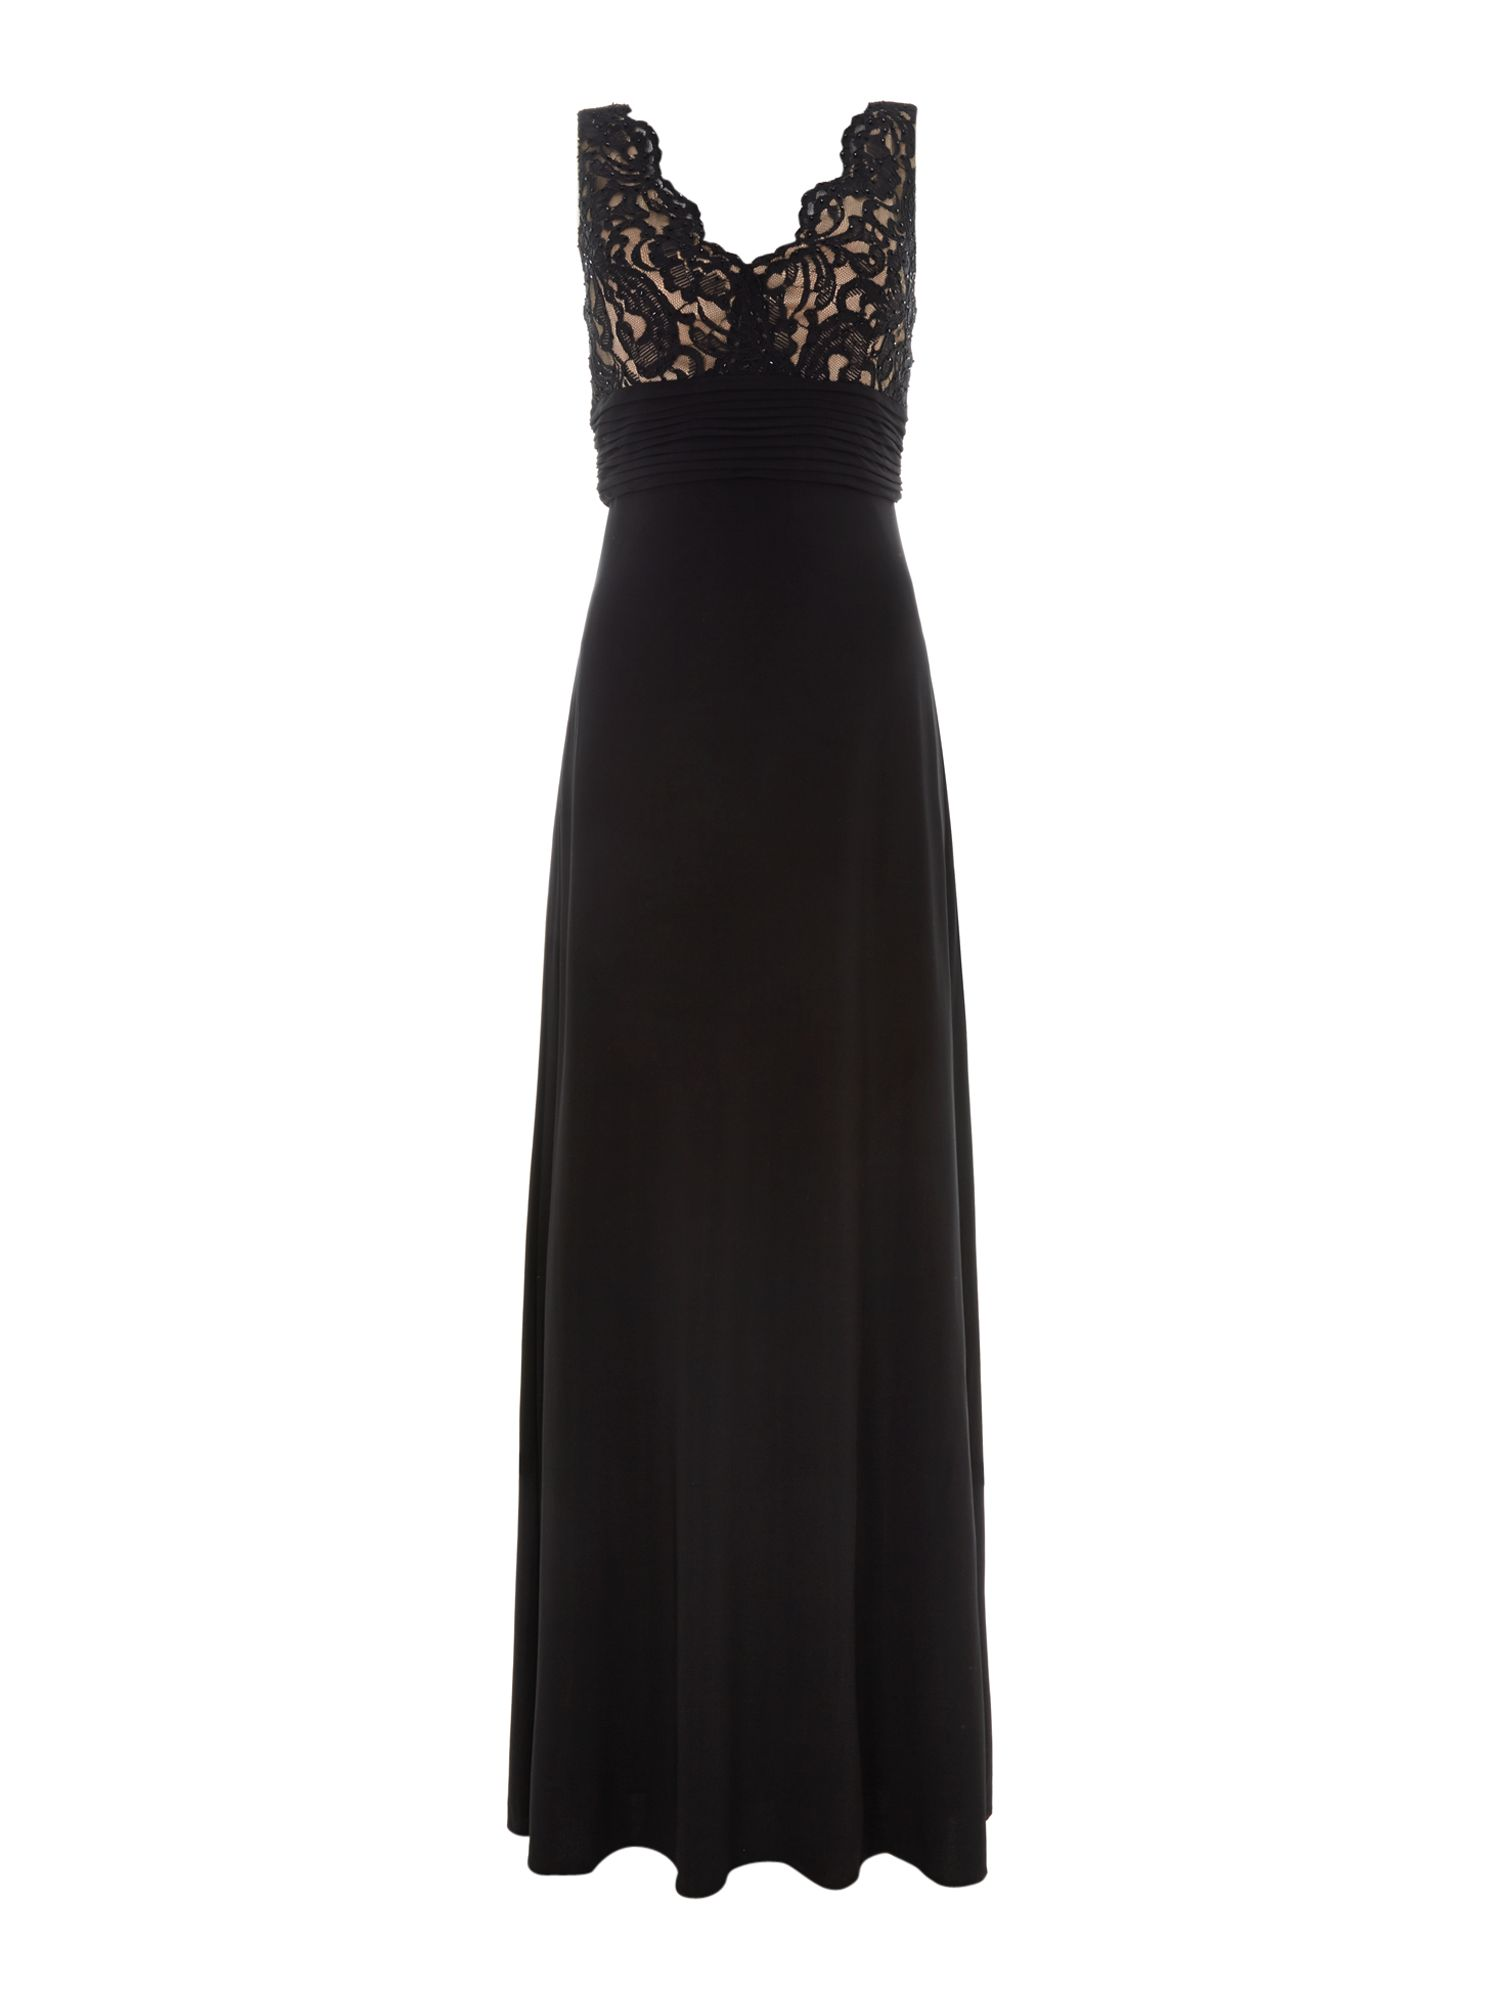 Lace v-neck evening dress